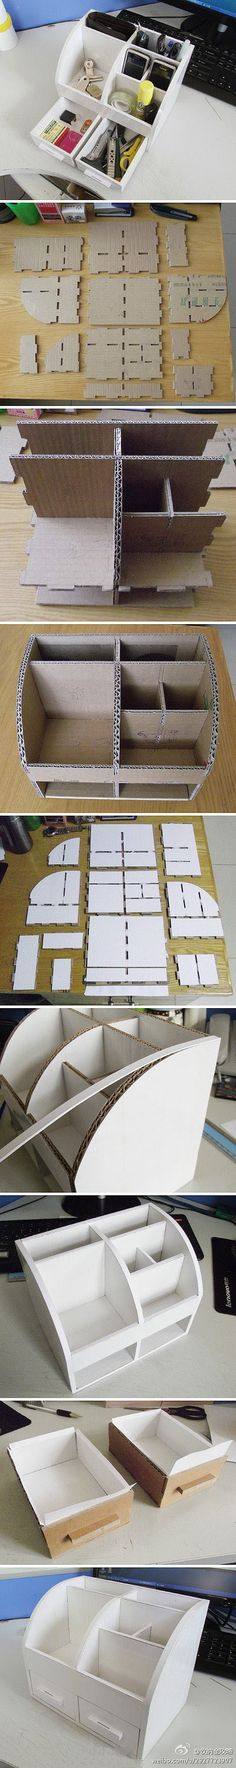 Storage Box with Drawer | Materials: Corrugated Cardboard | Instructions: http://tieba.baidu.com/p/2927723907